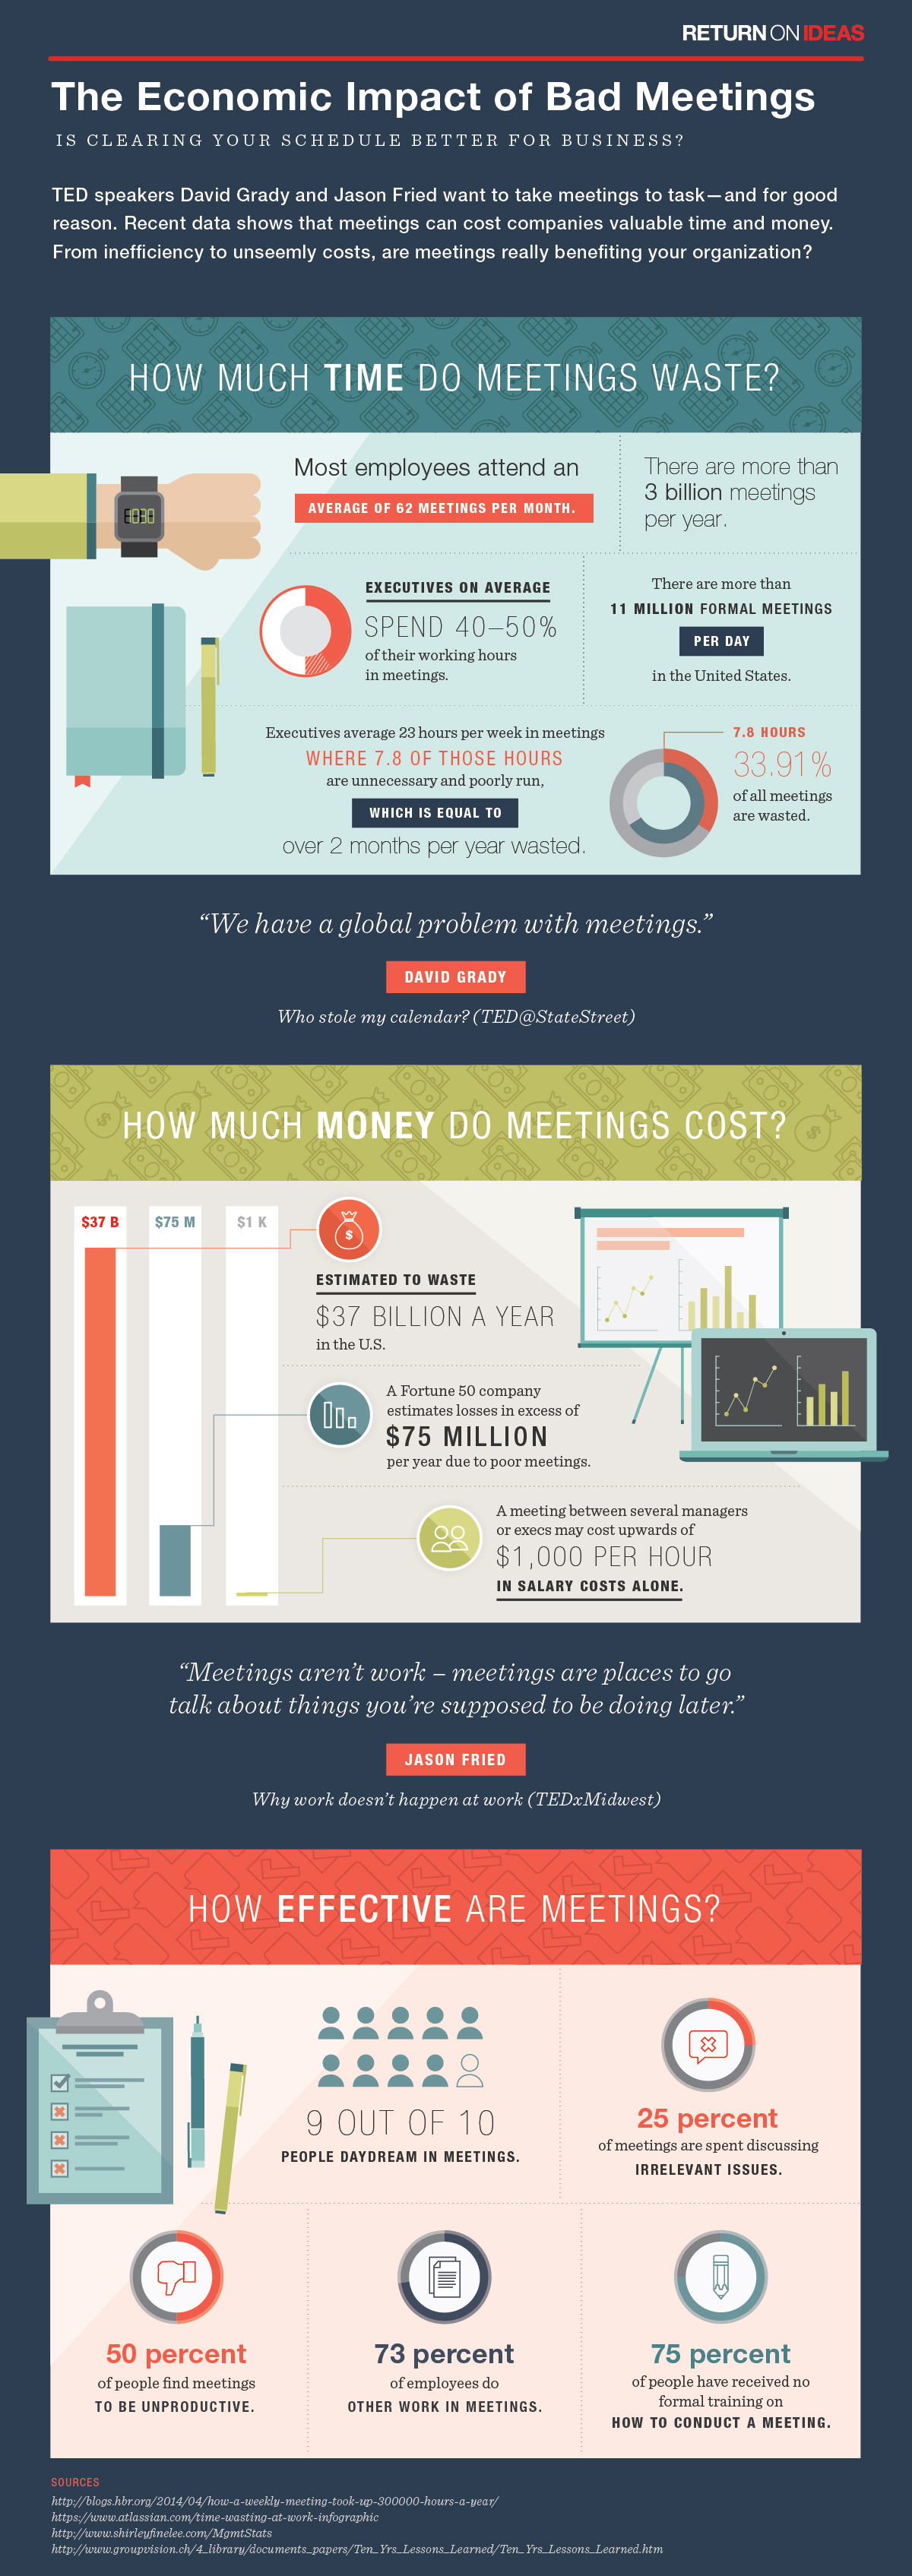 The economic impact of bad meetings | ideas.ted.com